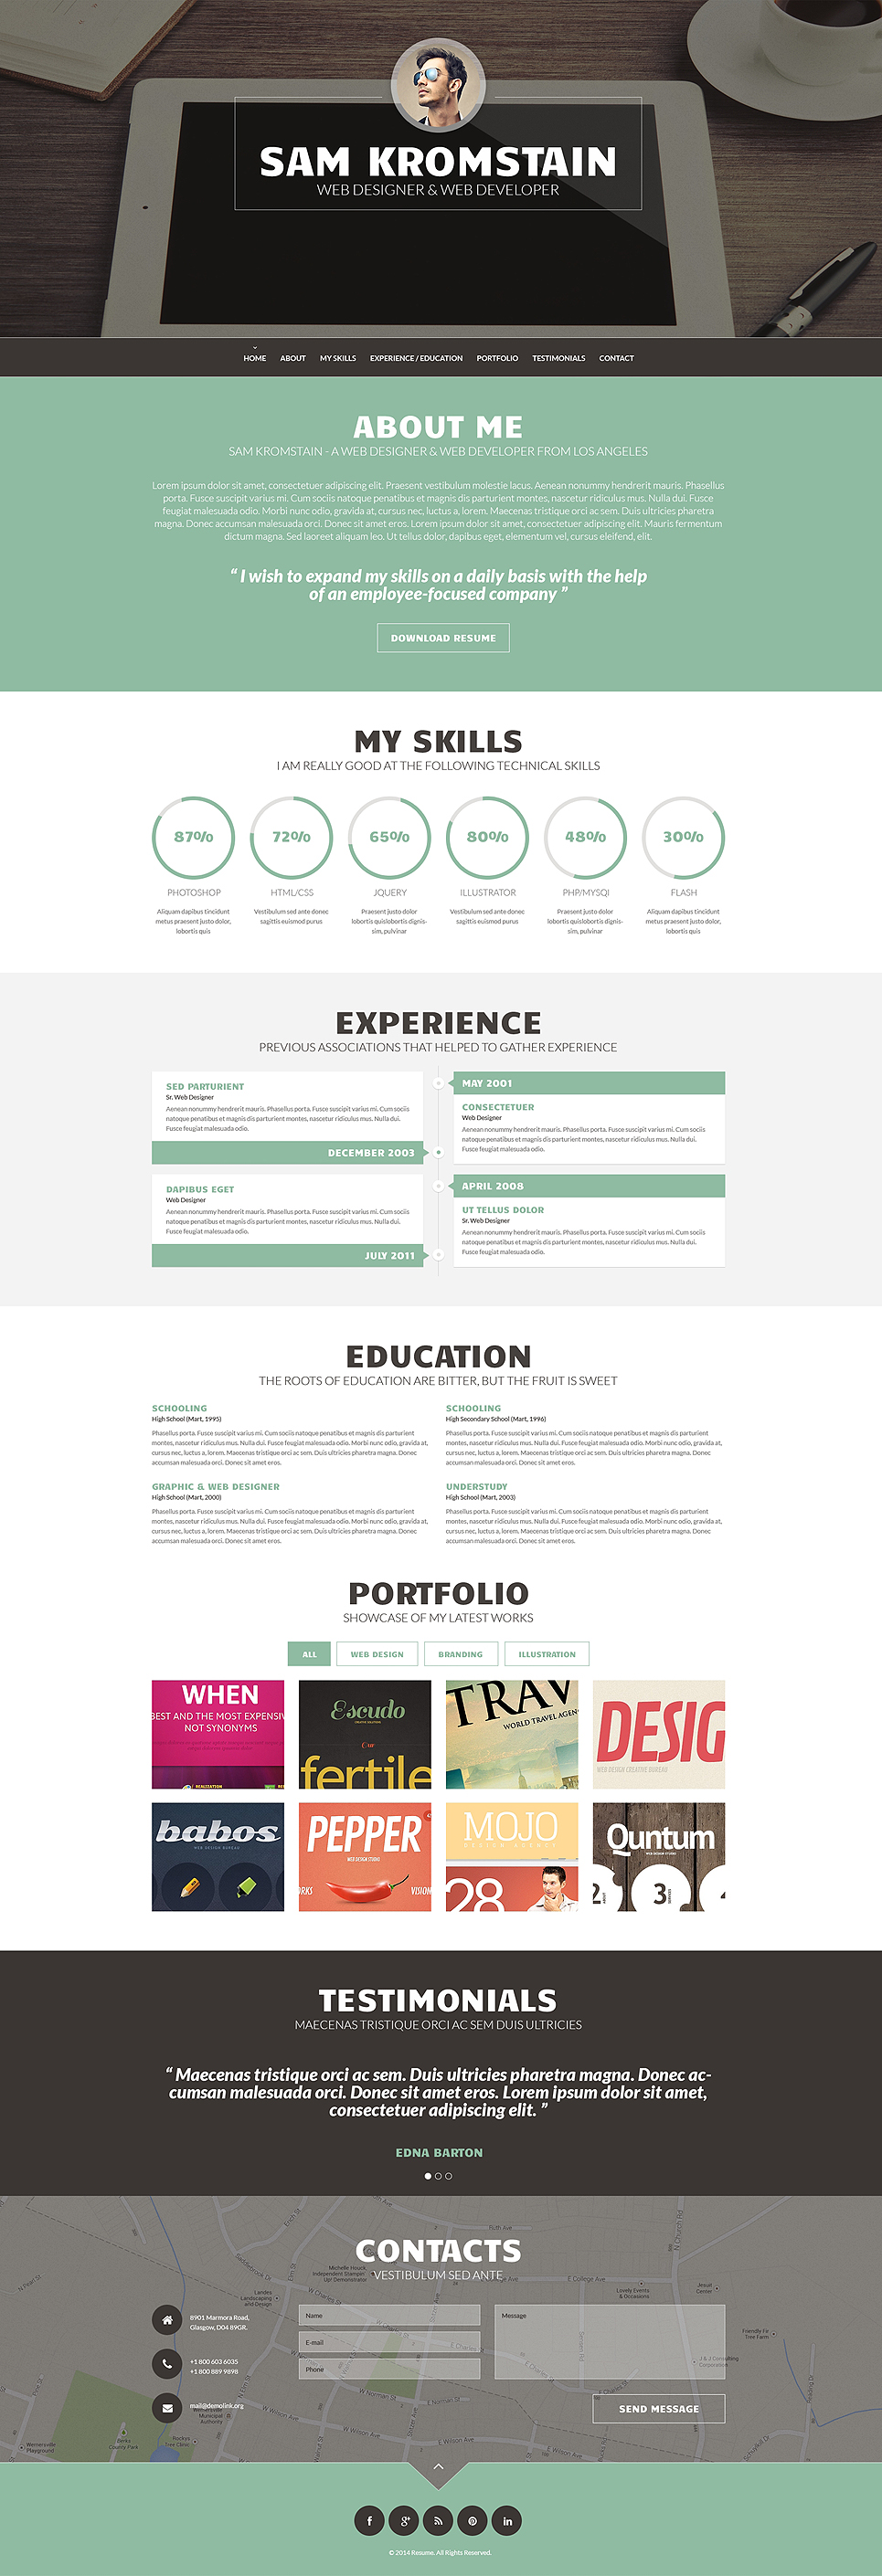 freelance writereditor resume samples  cv editor  extraordinary is     Ww linkedin sample resume writer Page   Author Resume Sample